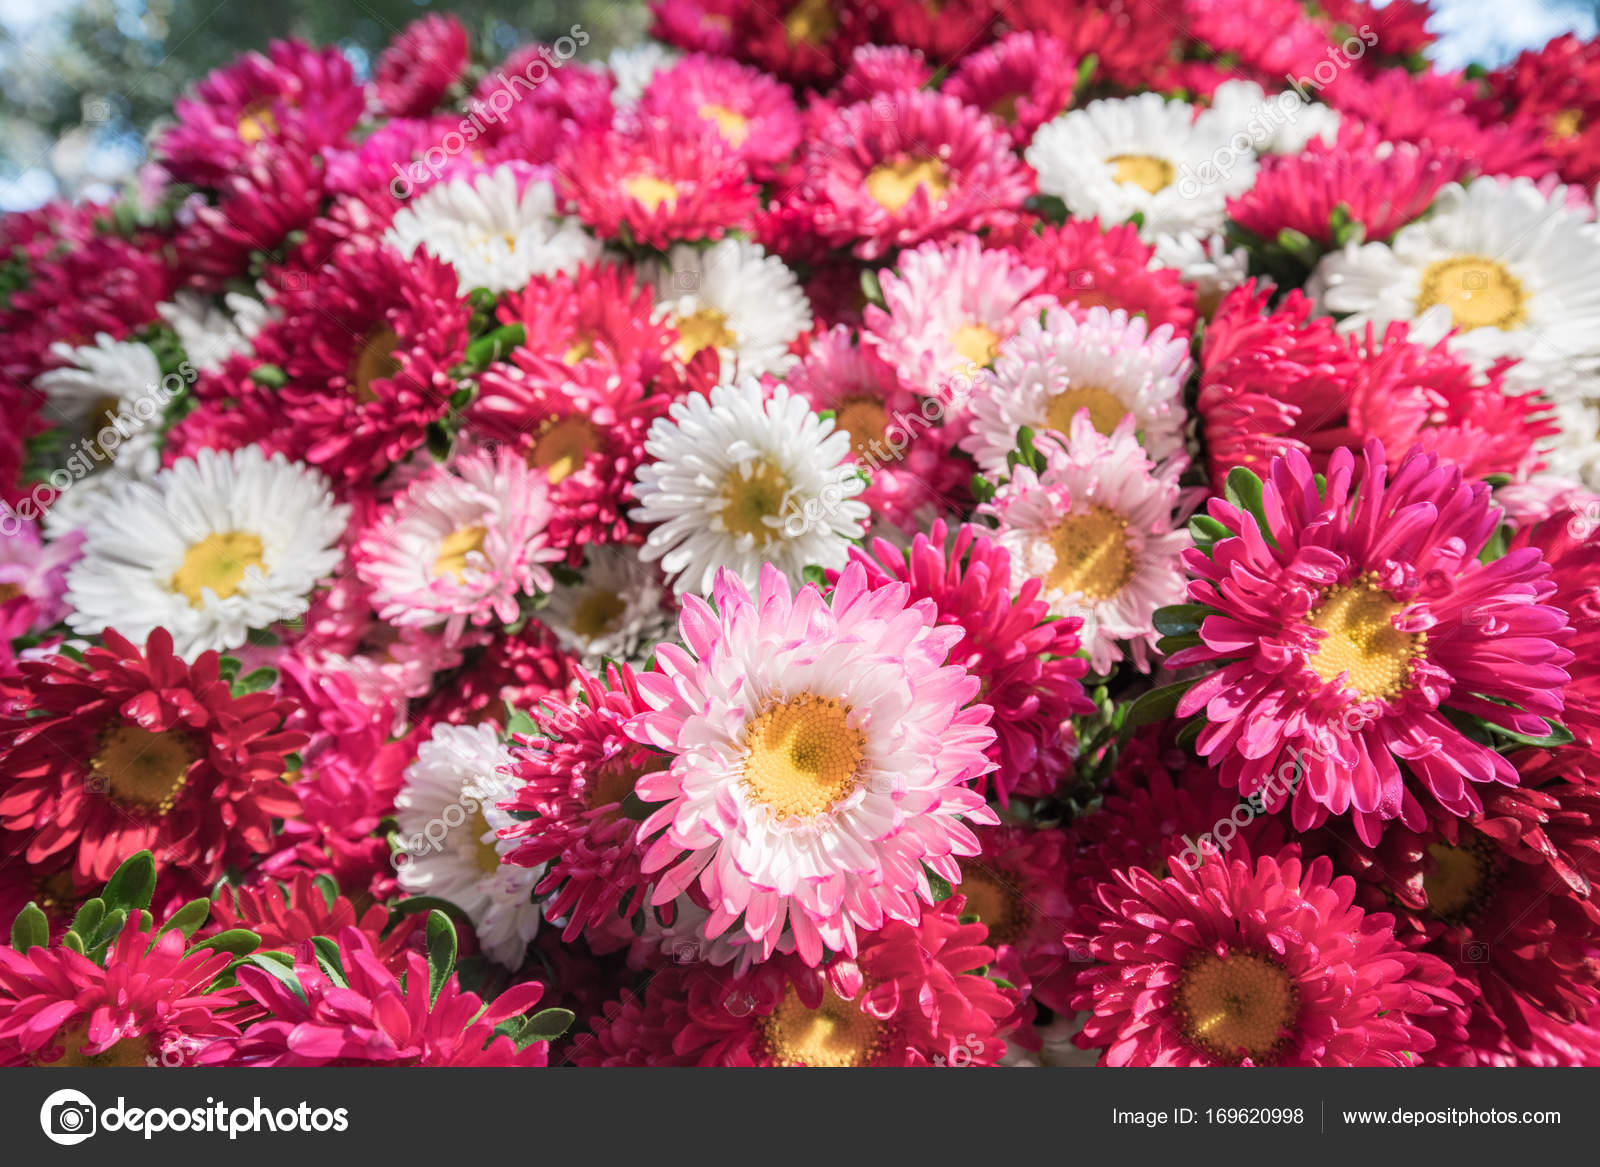 Colorful flowers background for sale at the wholesale flower mar ...